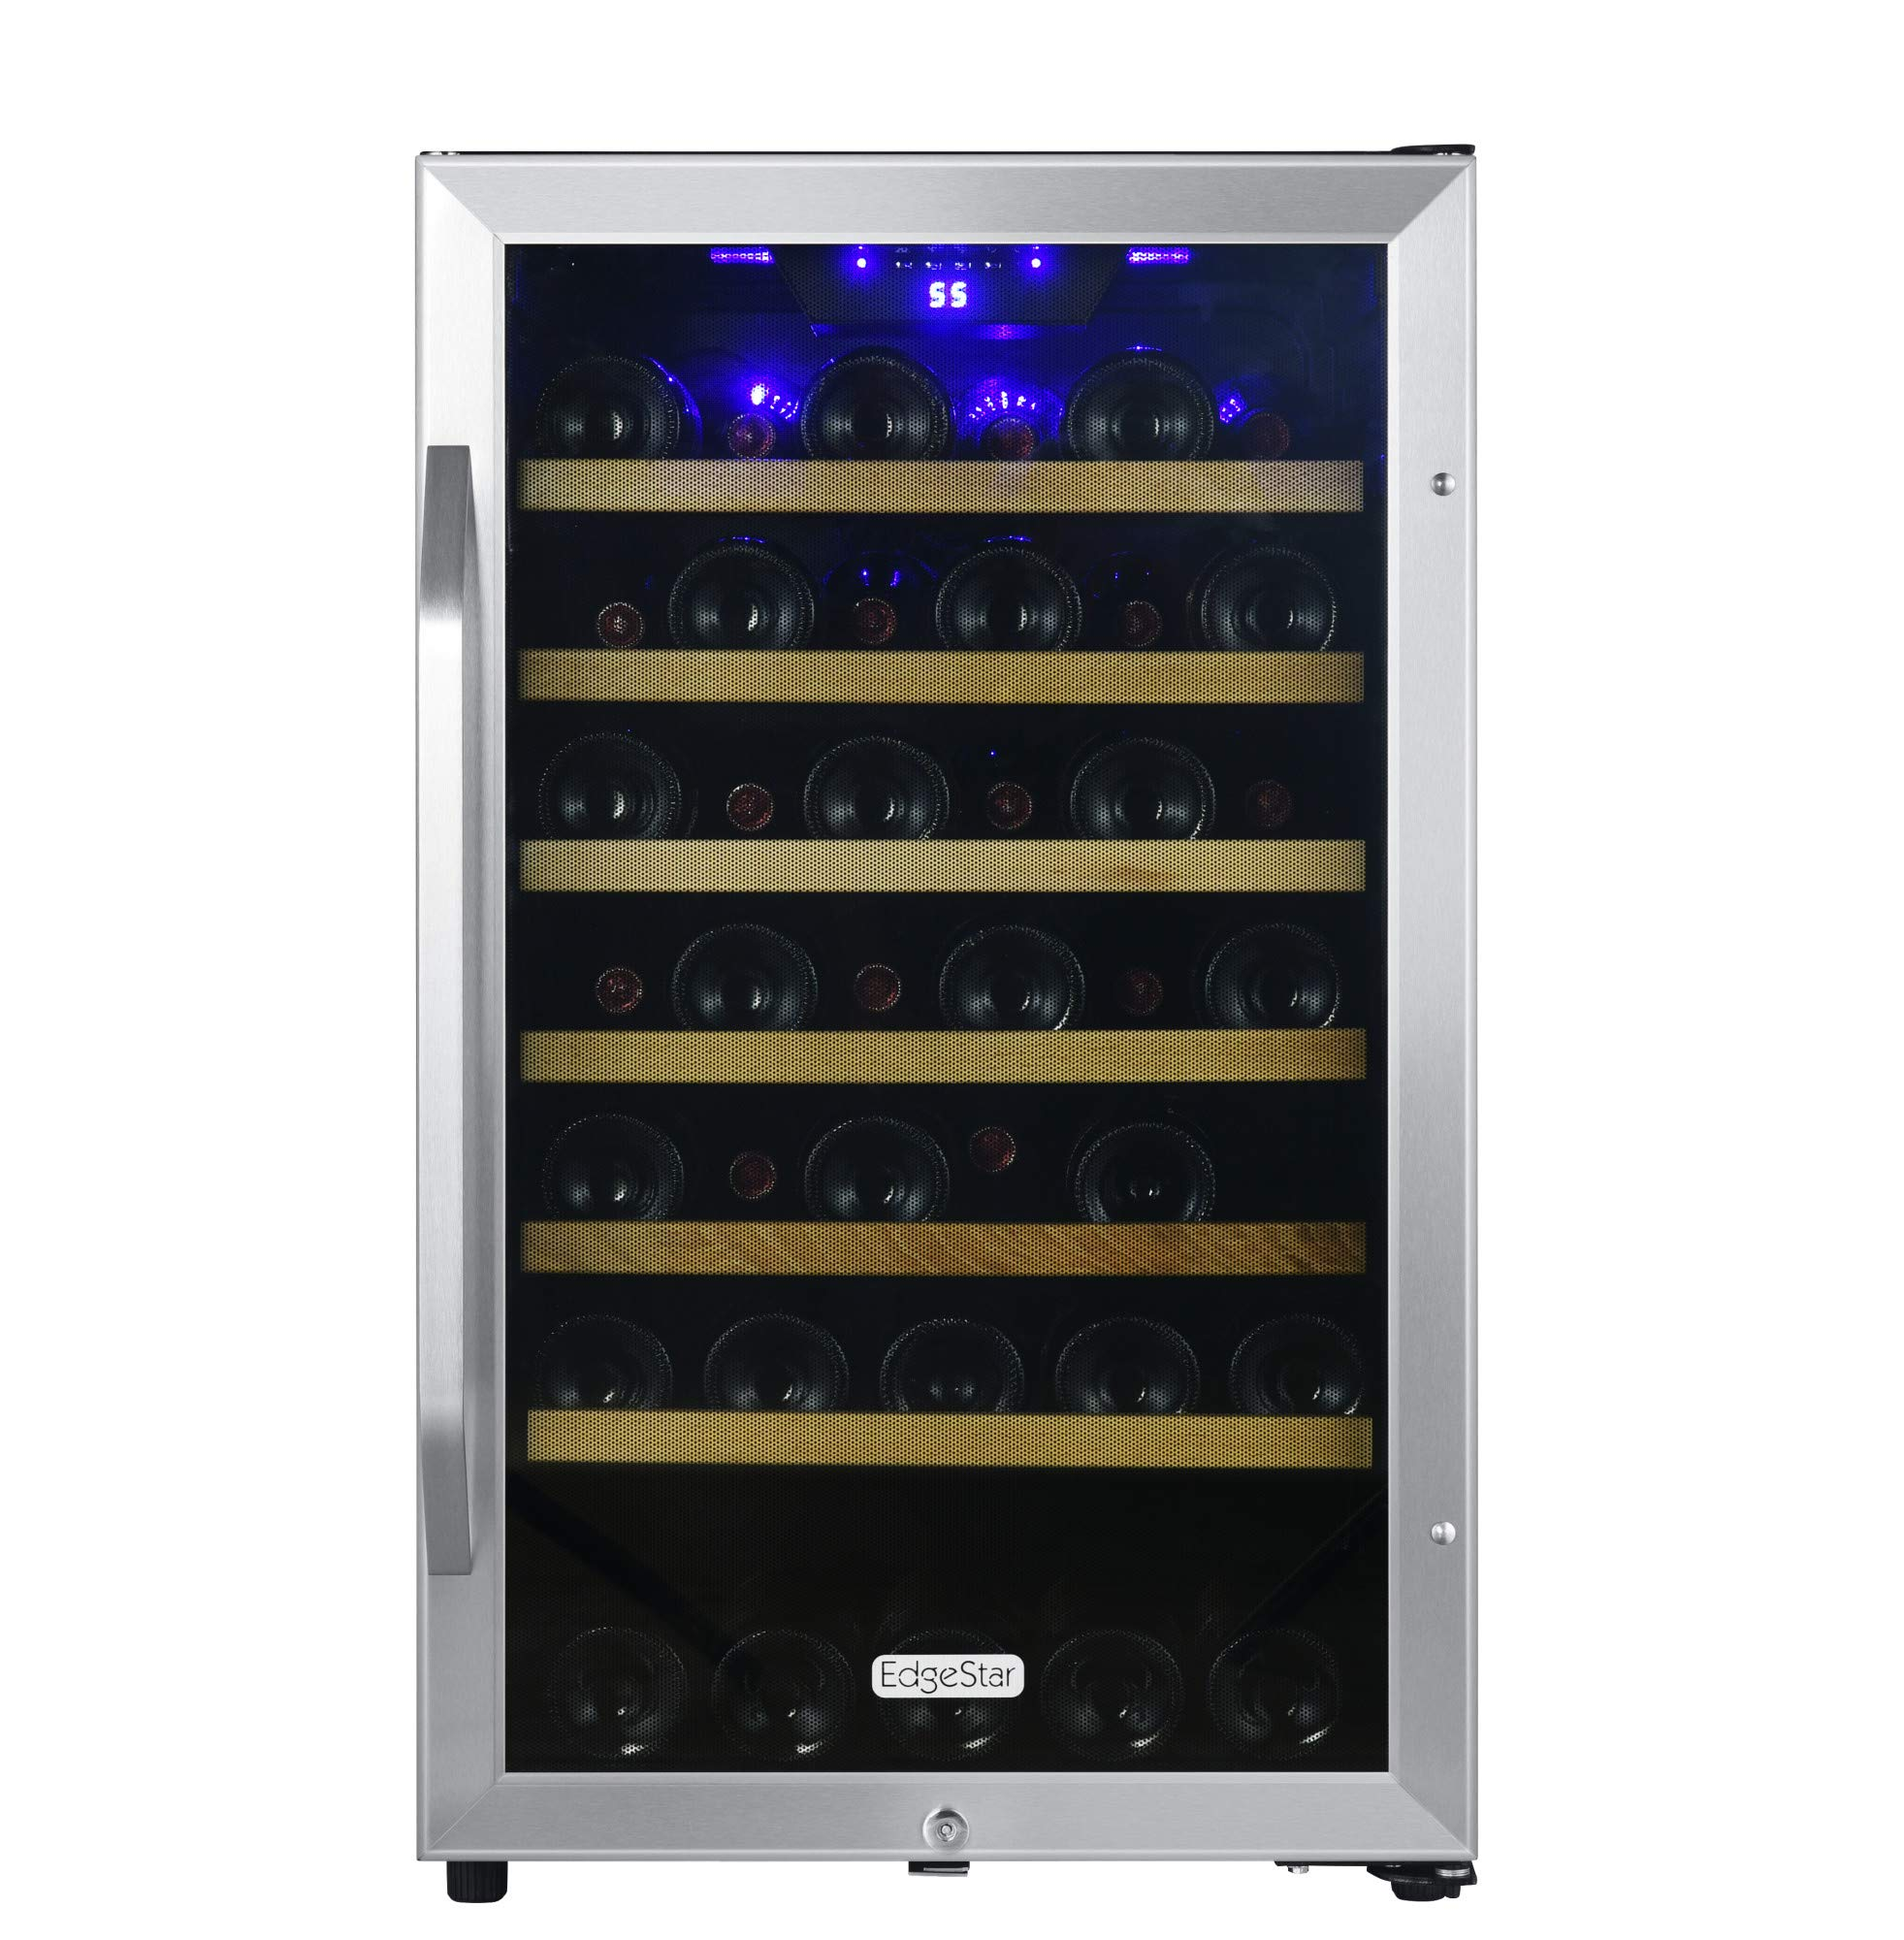 EdgeStar CWF440SZ 20 Inch Wide 44 Bottle Capacity Free Standing Wine Cooler with Reversible Door and LED Lighting by EdgeStar